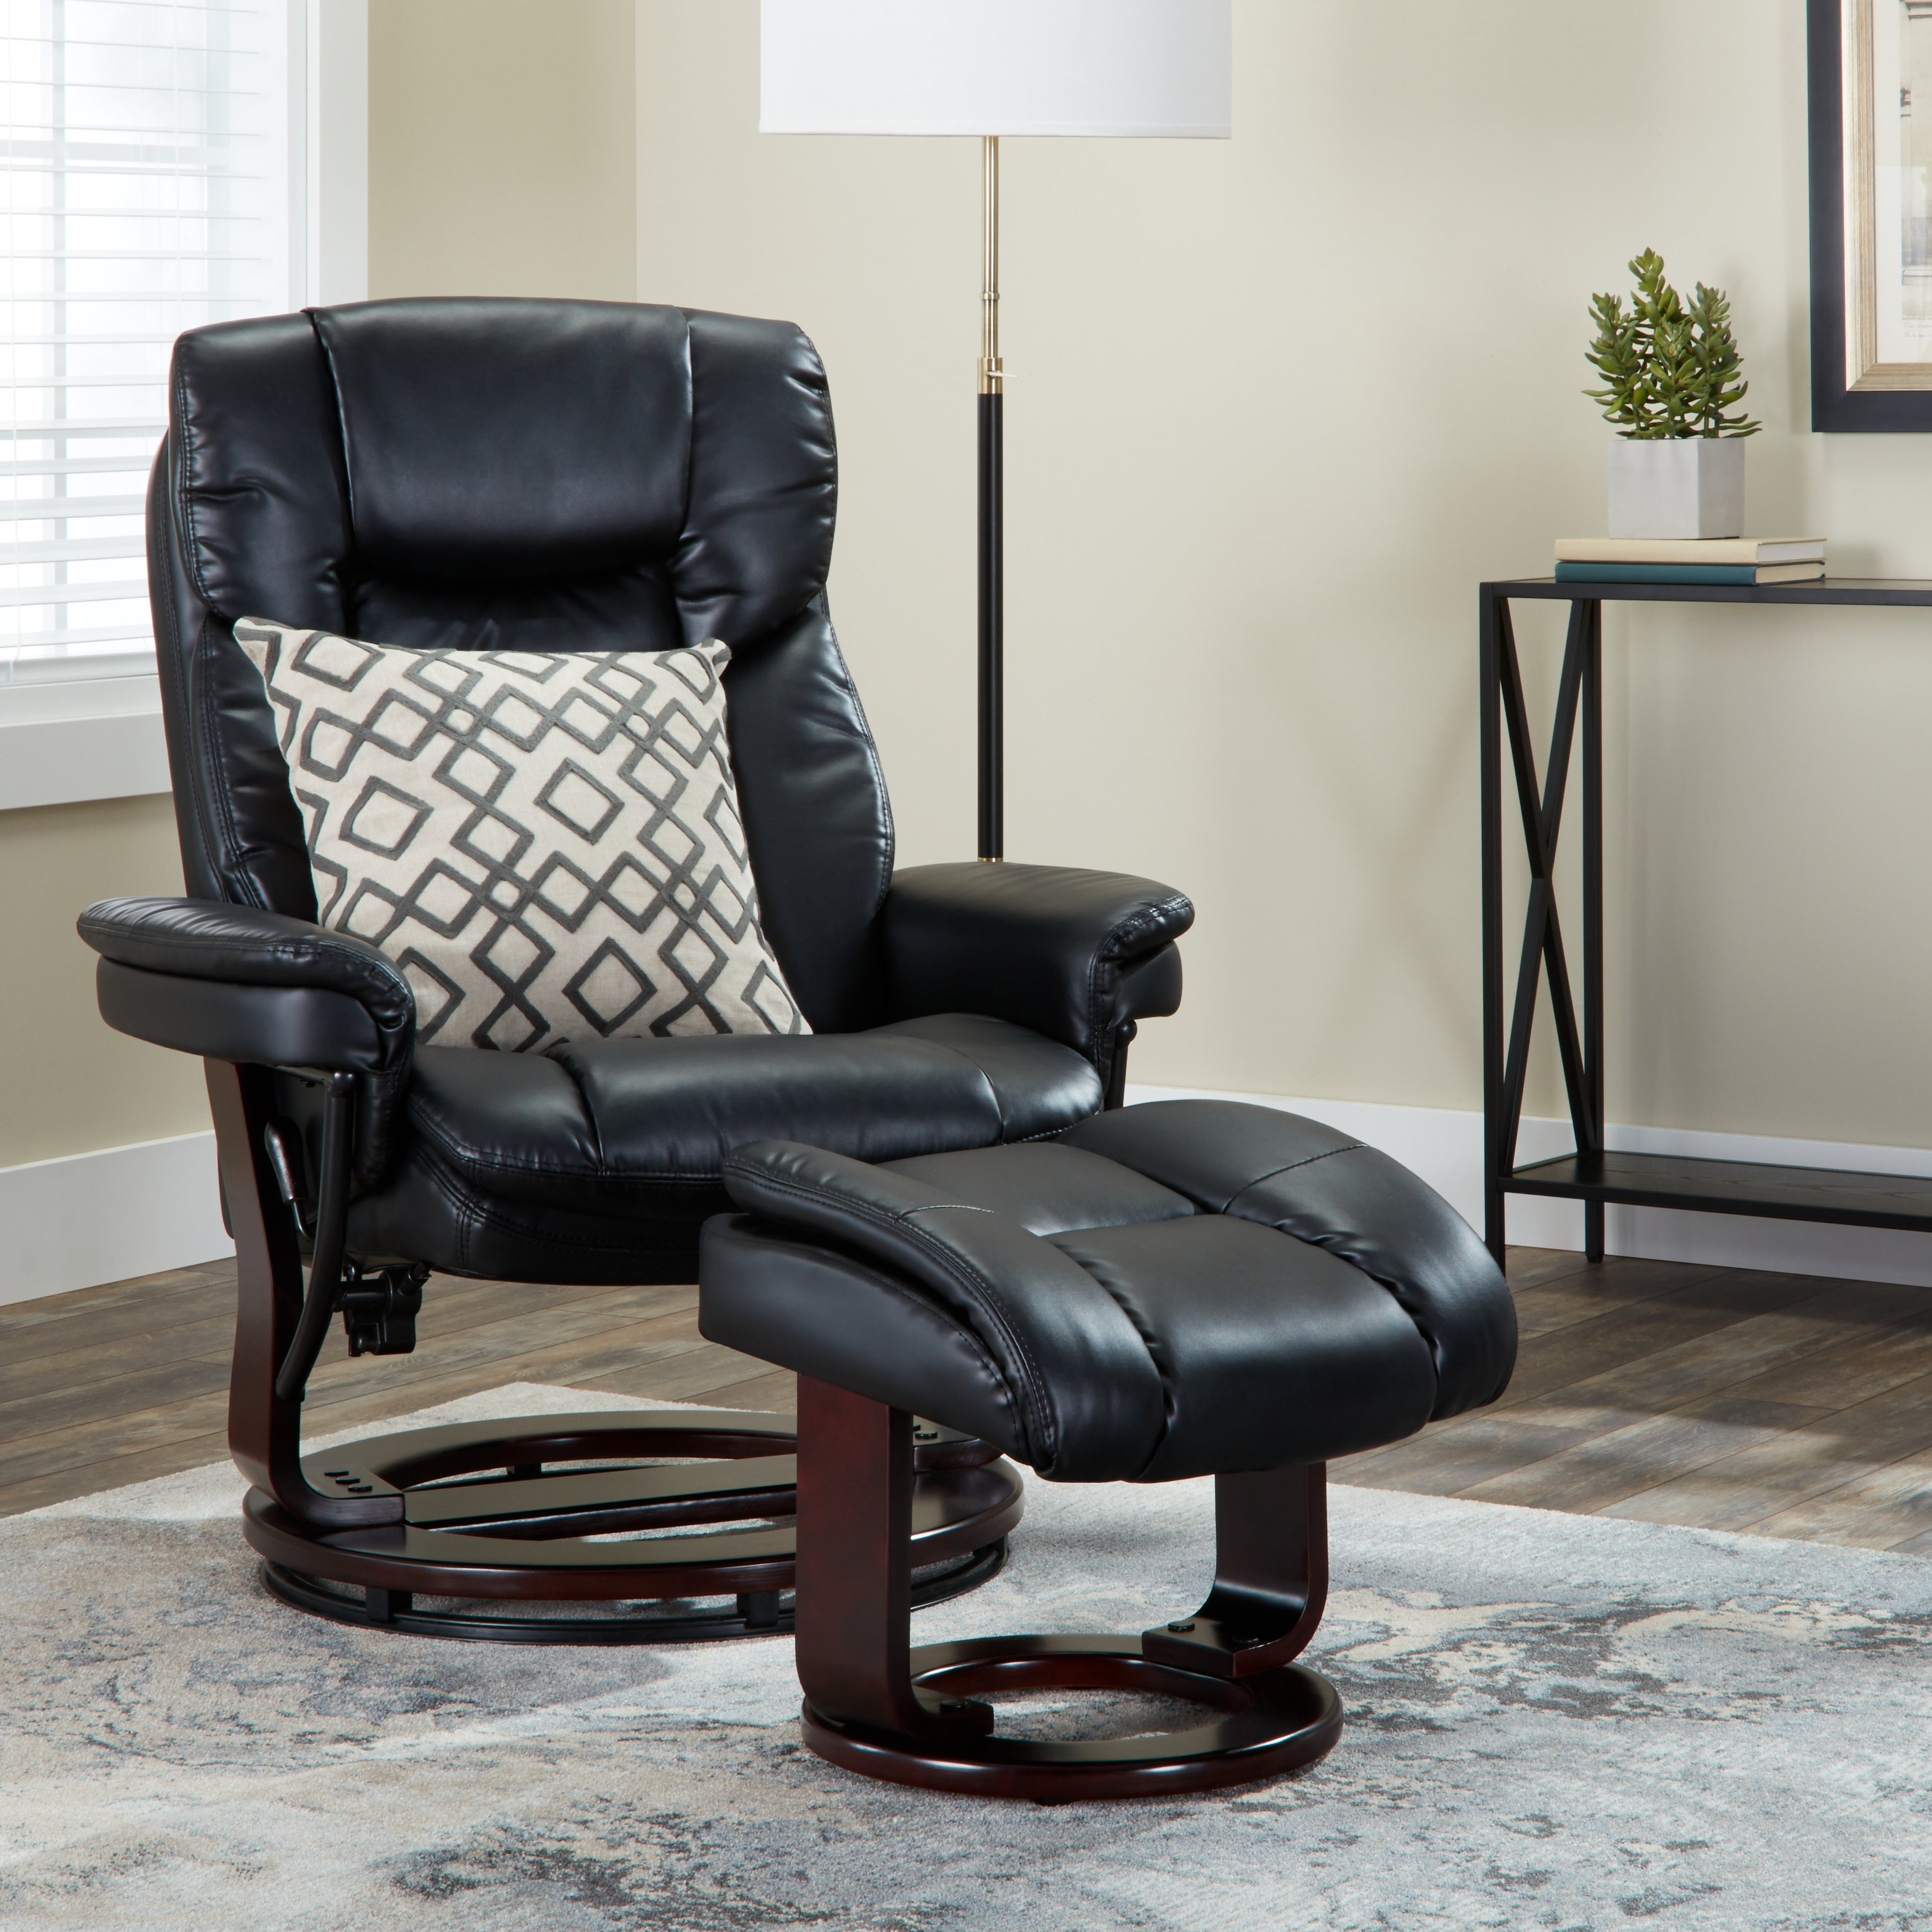 Genial Clay Alder Home Mackinac Modern Swivel Recliner And Ottoman